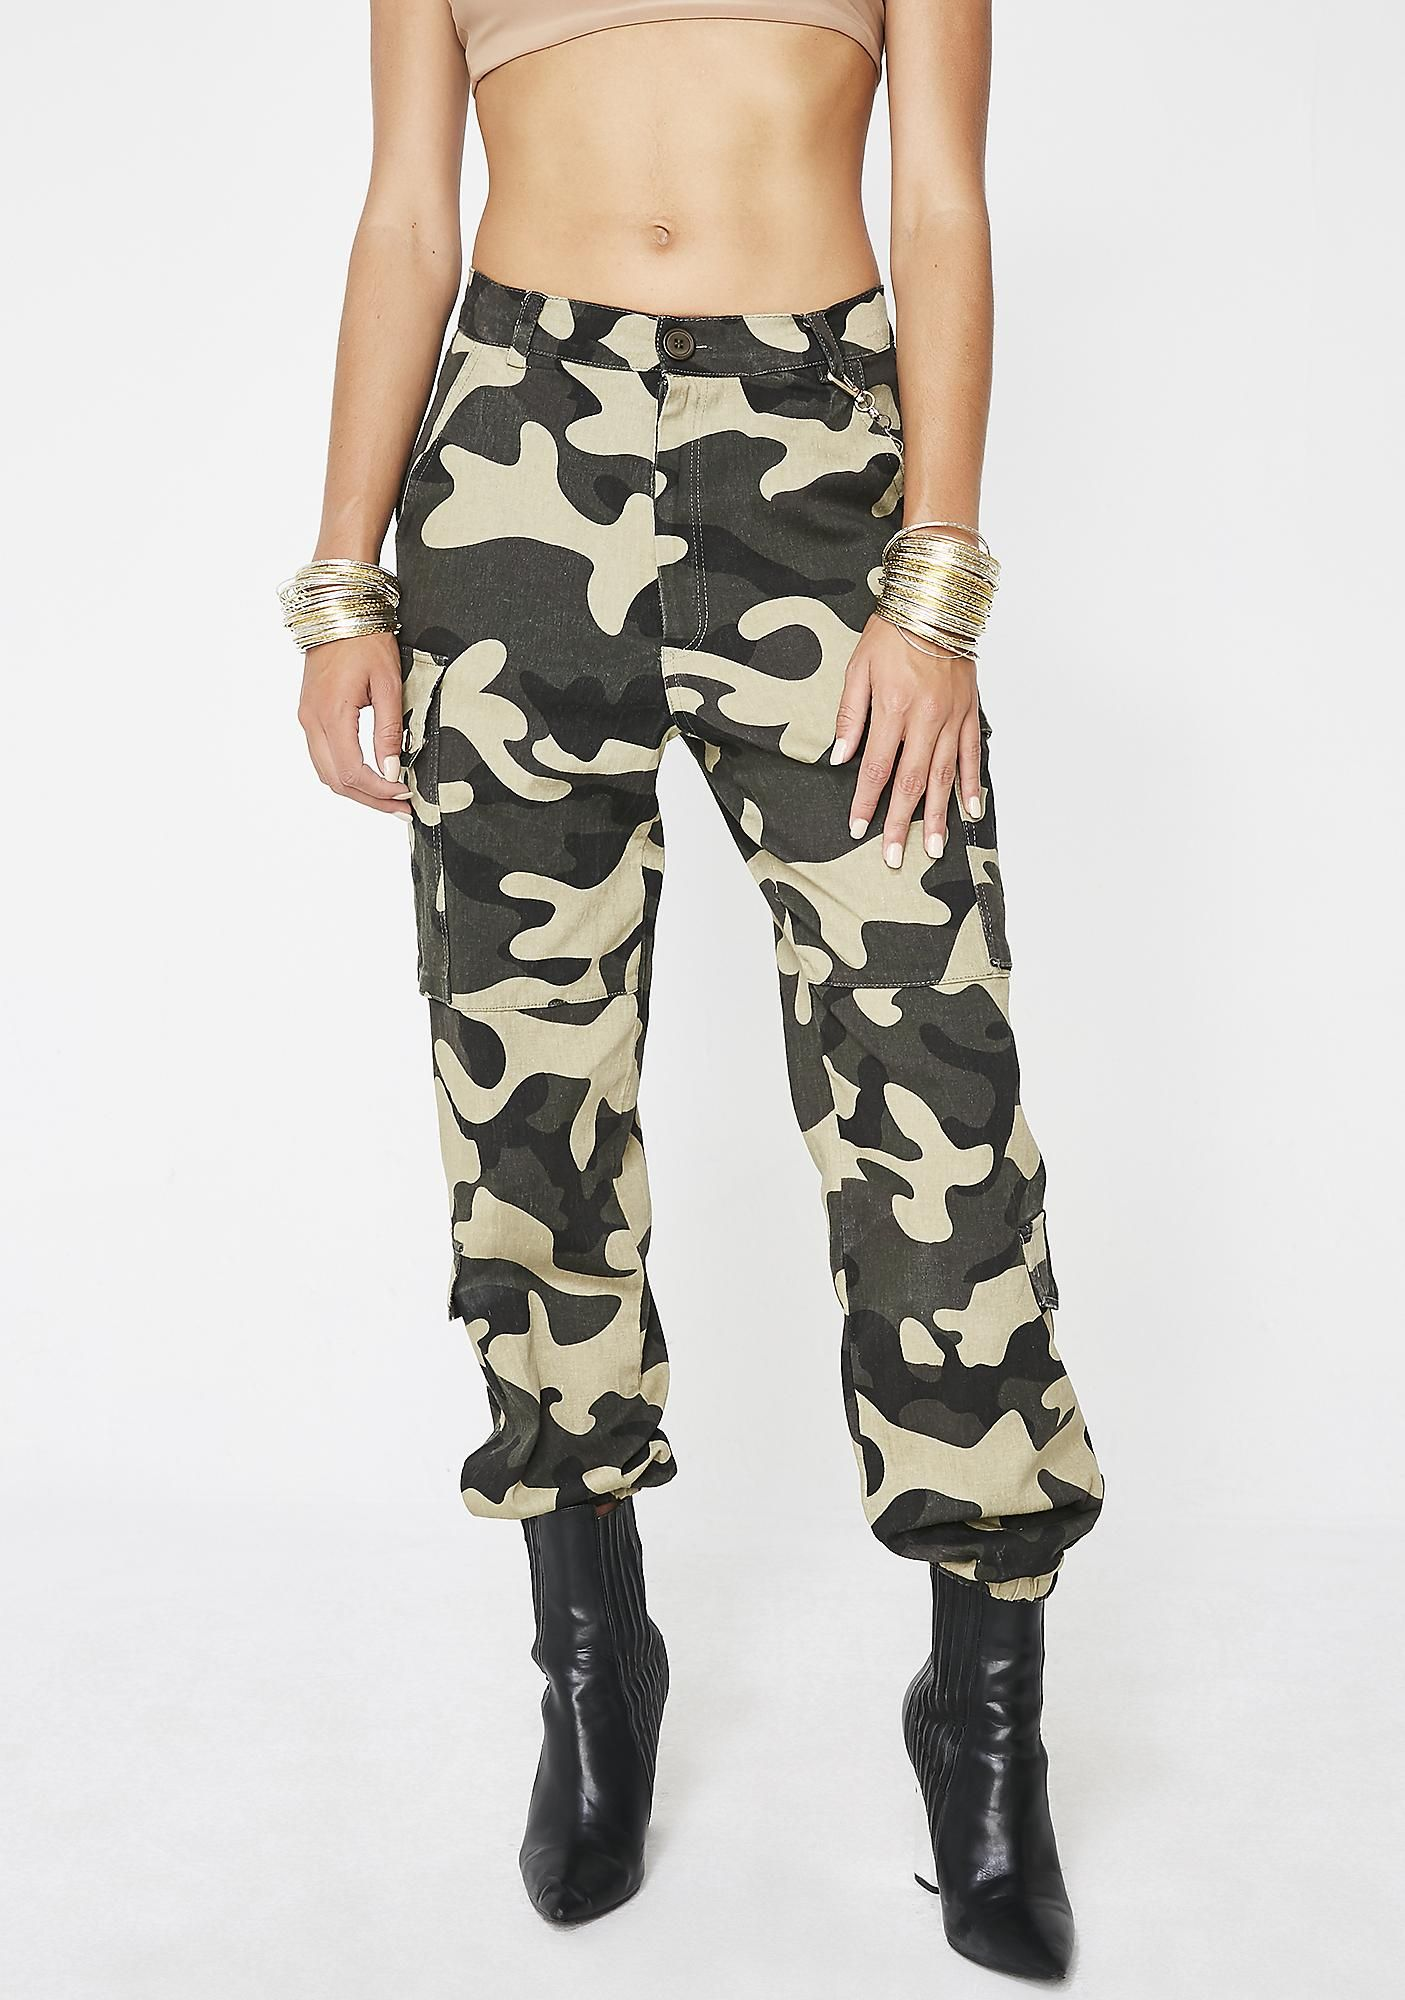 War Ready Camo Pants #boydollsincamo